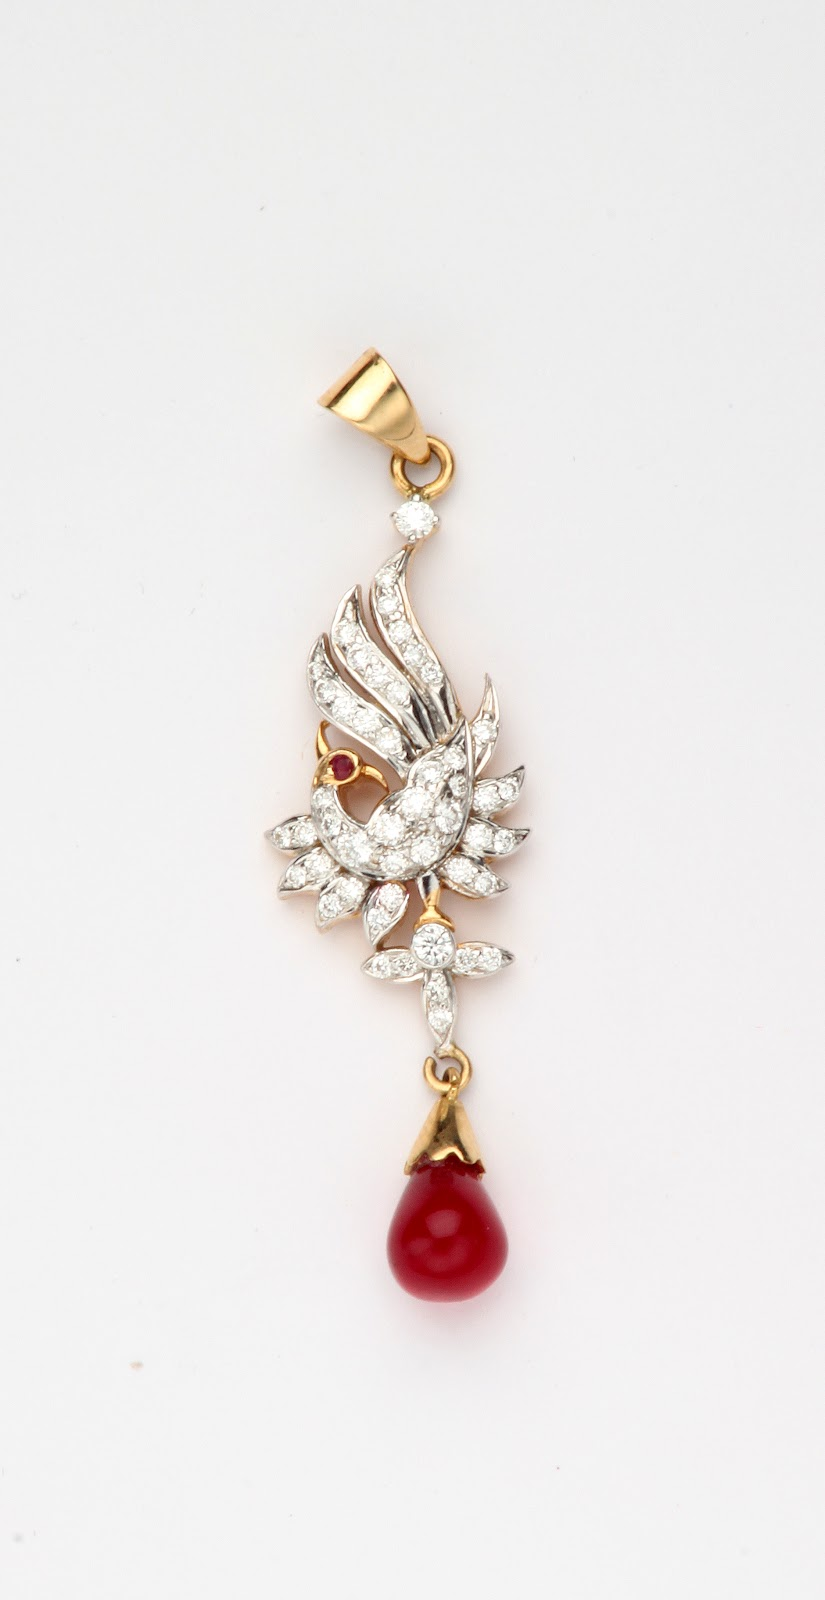 Indian Jewellery And Clothing Peacock Design Pendants And